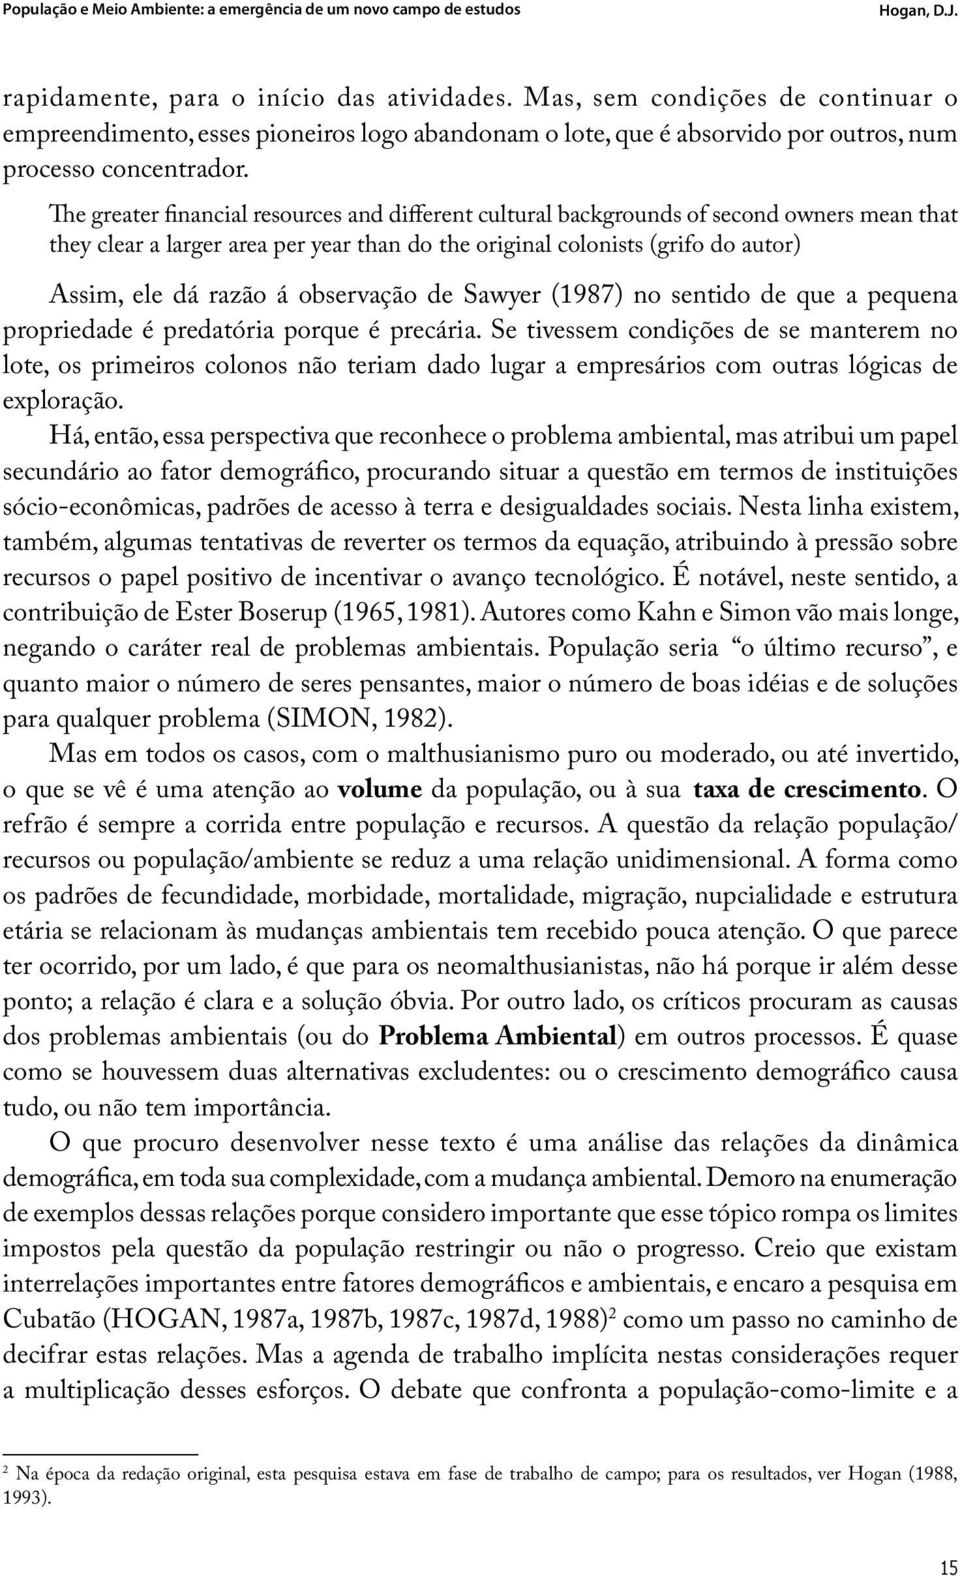 The greater financial resources and different cultural backgrounds of second owners mean that they clear a larger area per year than do the original colonists (grifo do autor) Assim, ele dá razão á